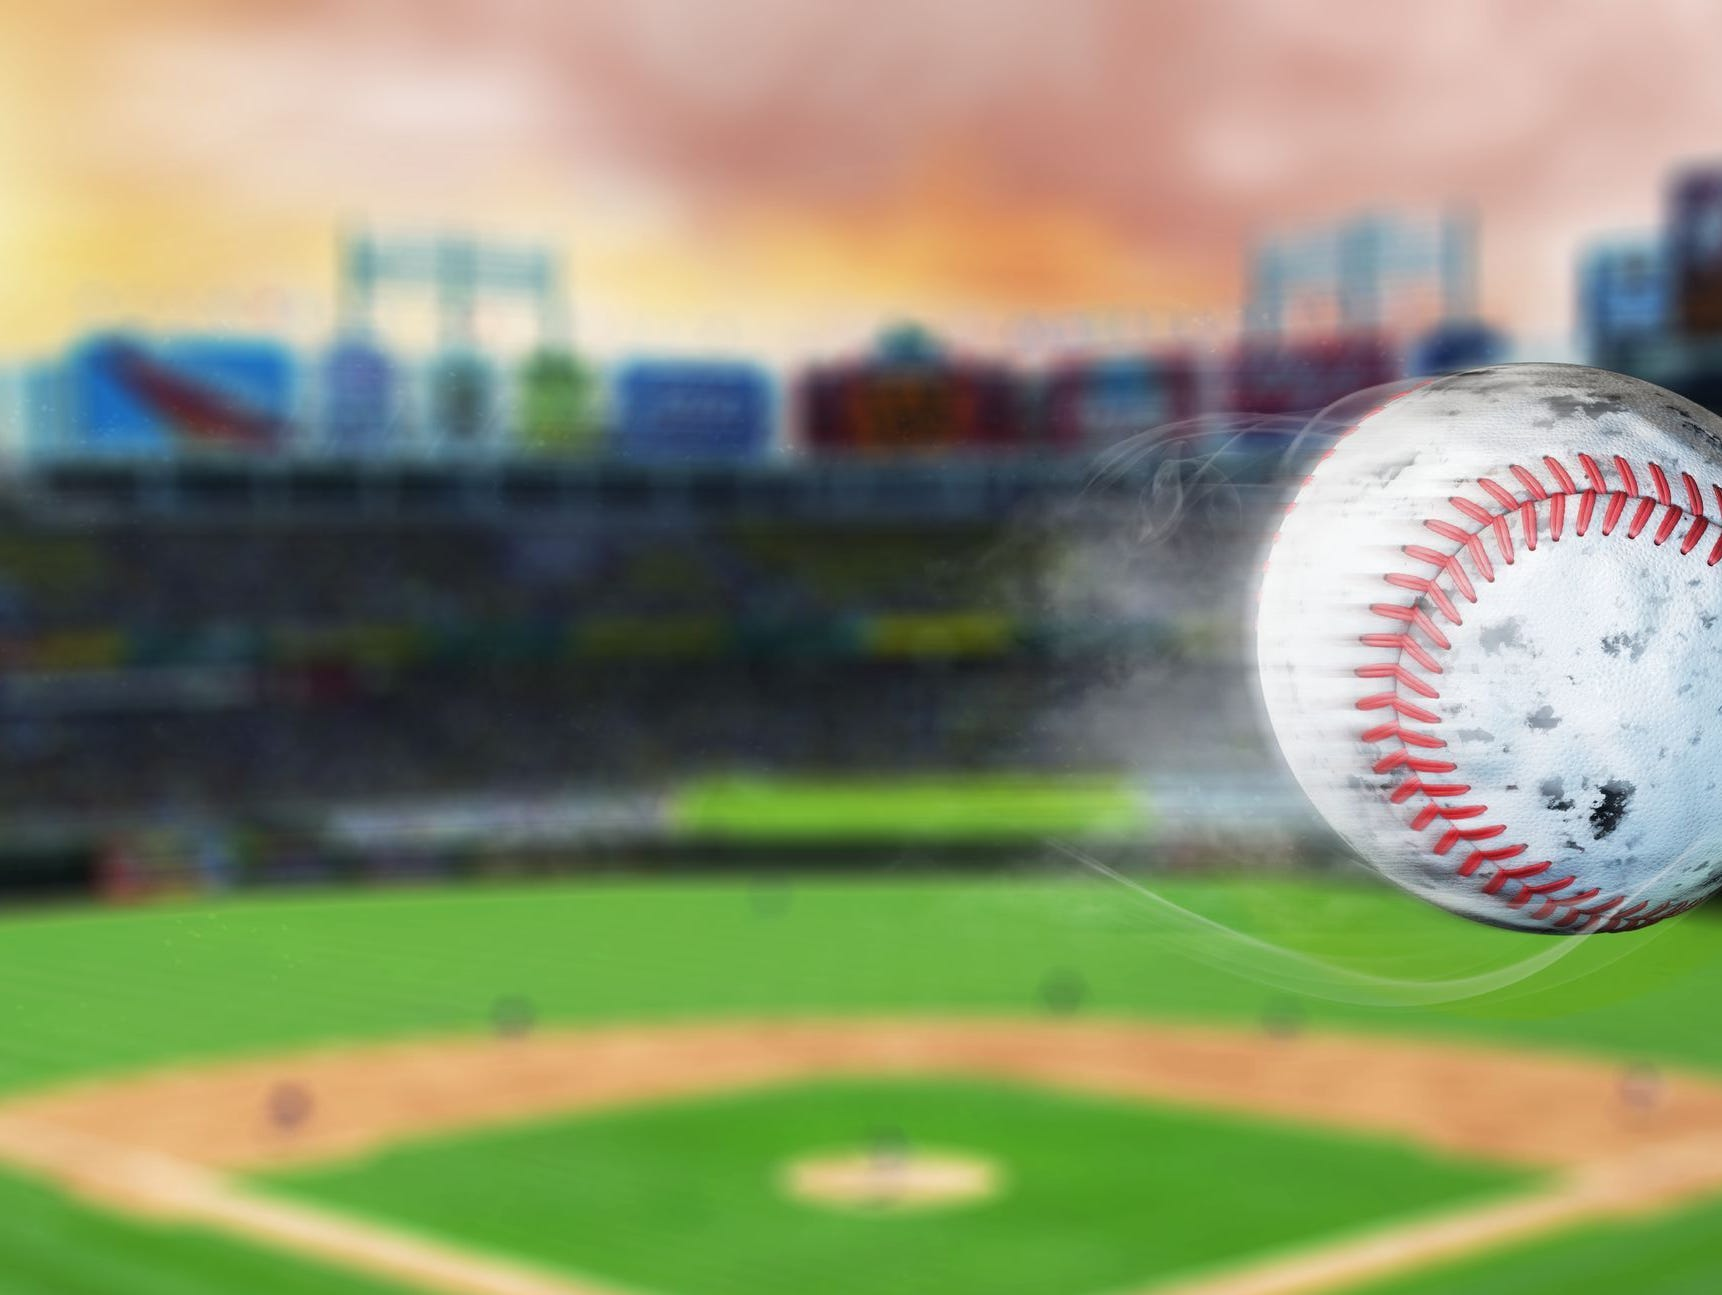 Use an exclusive voucher to activate discount tickets to the Diamondbacks vs Marlins games 9/22-9/24!